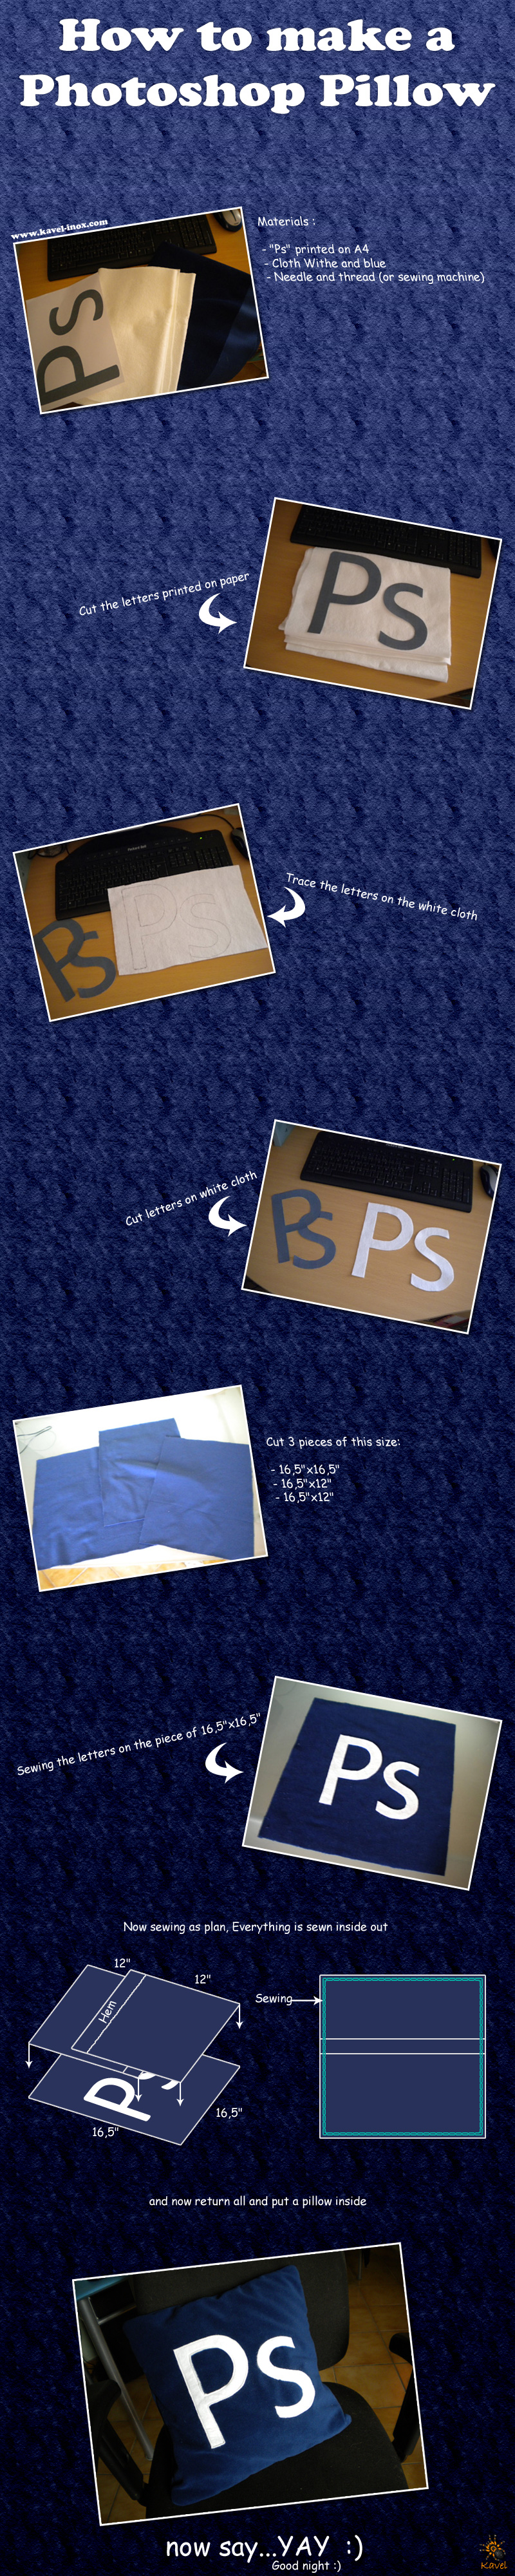 How to make a Photoshop Pillow